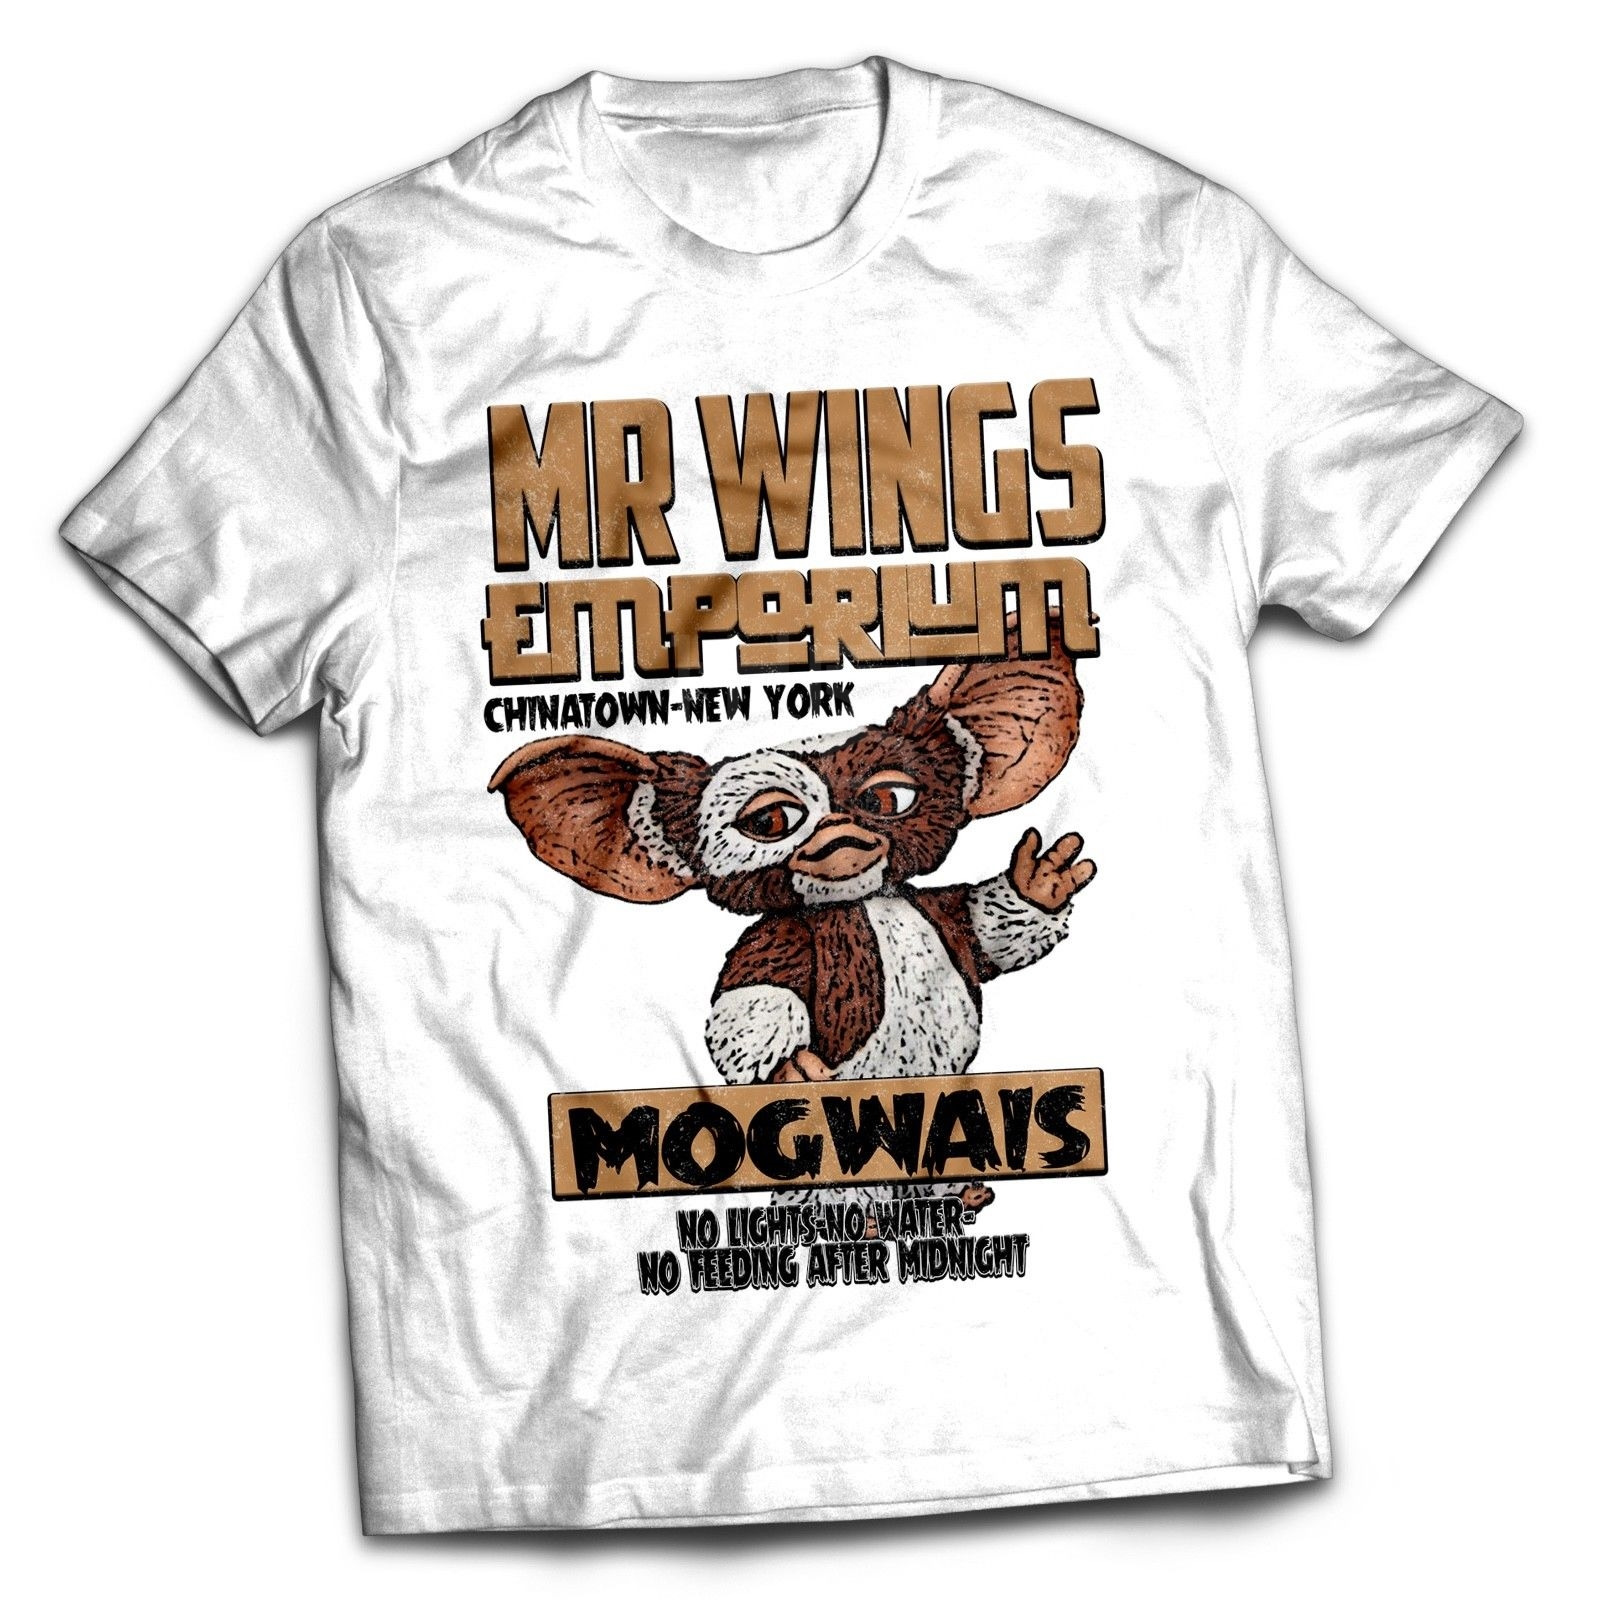 Gremlins Mogwai Inspired The Goonies 80s Retro Italian Movie Film T Shirt Clothes Popular T-Shirt Crewneck 100% Cotton Tees image